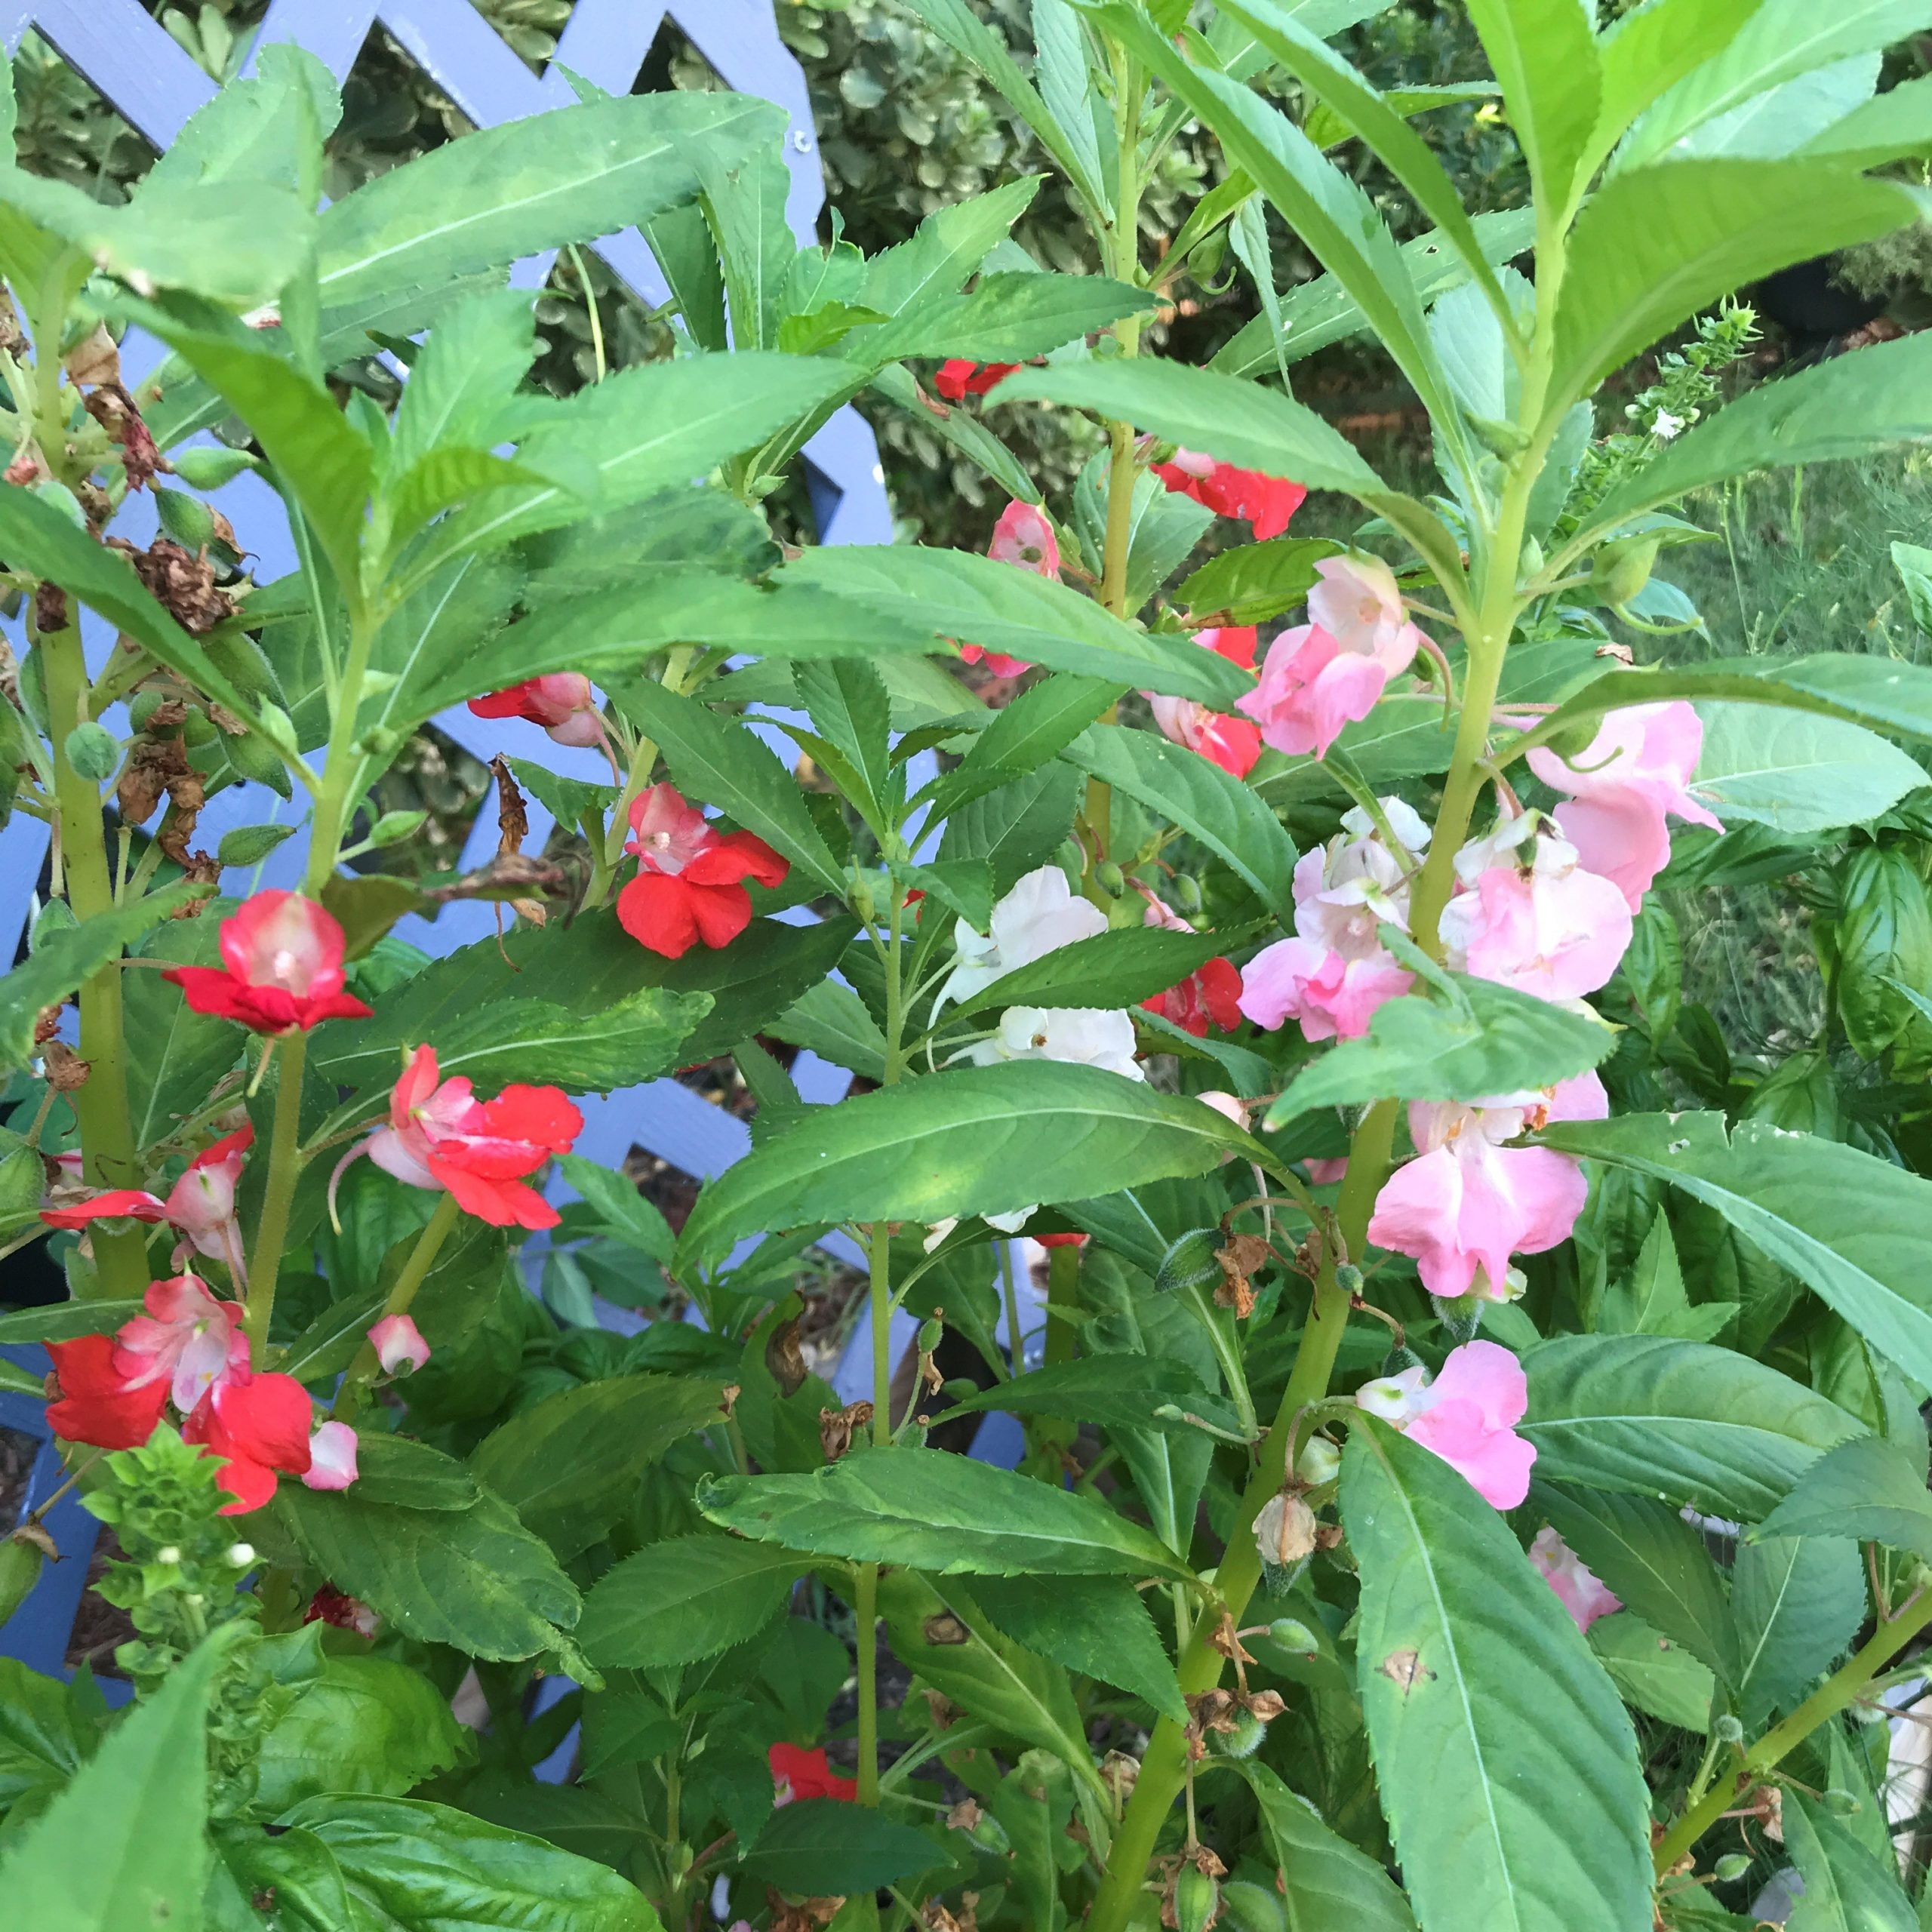 How to grow balsam flower